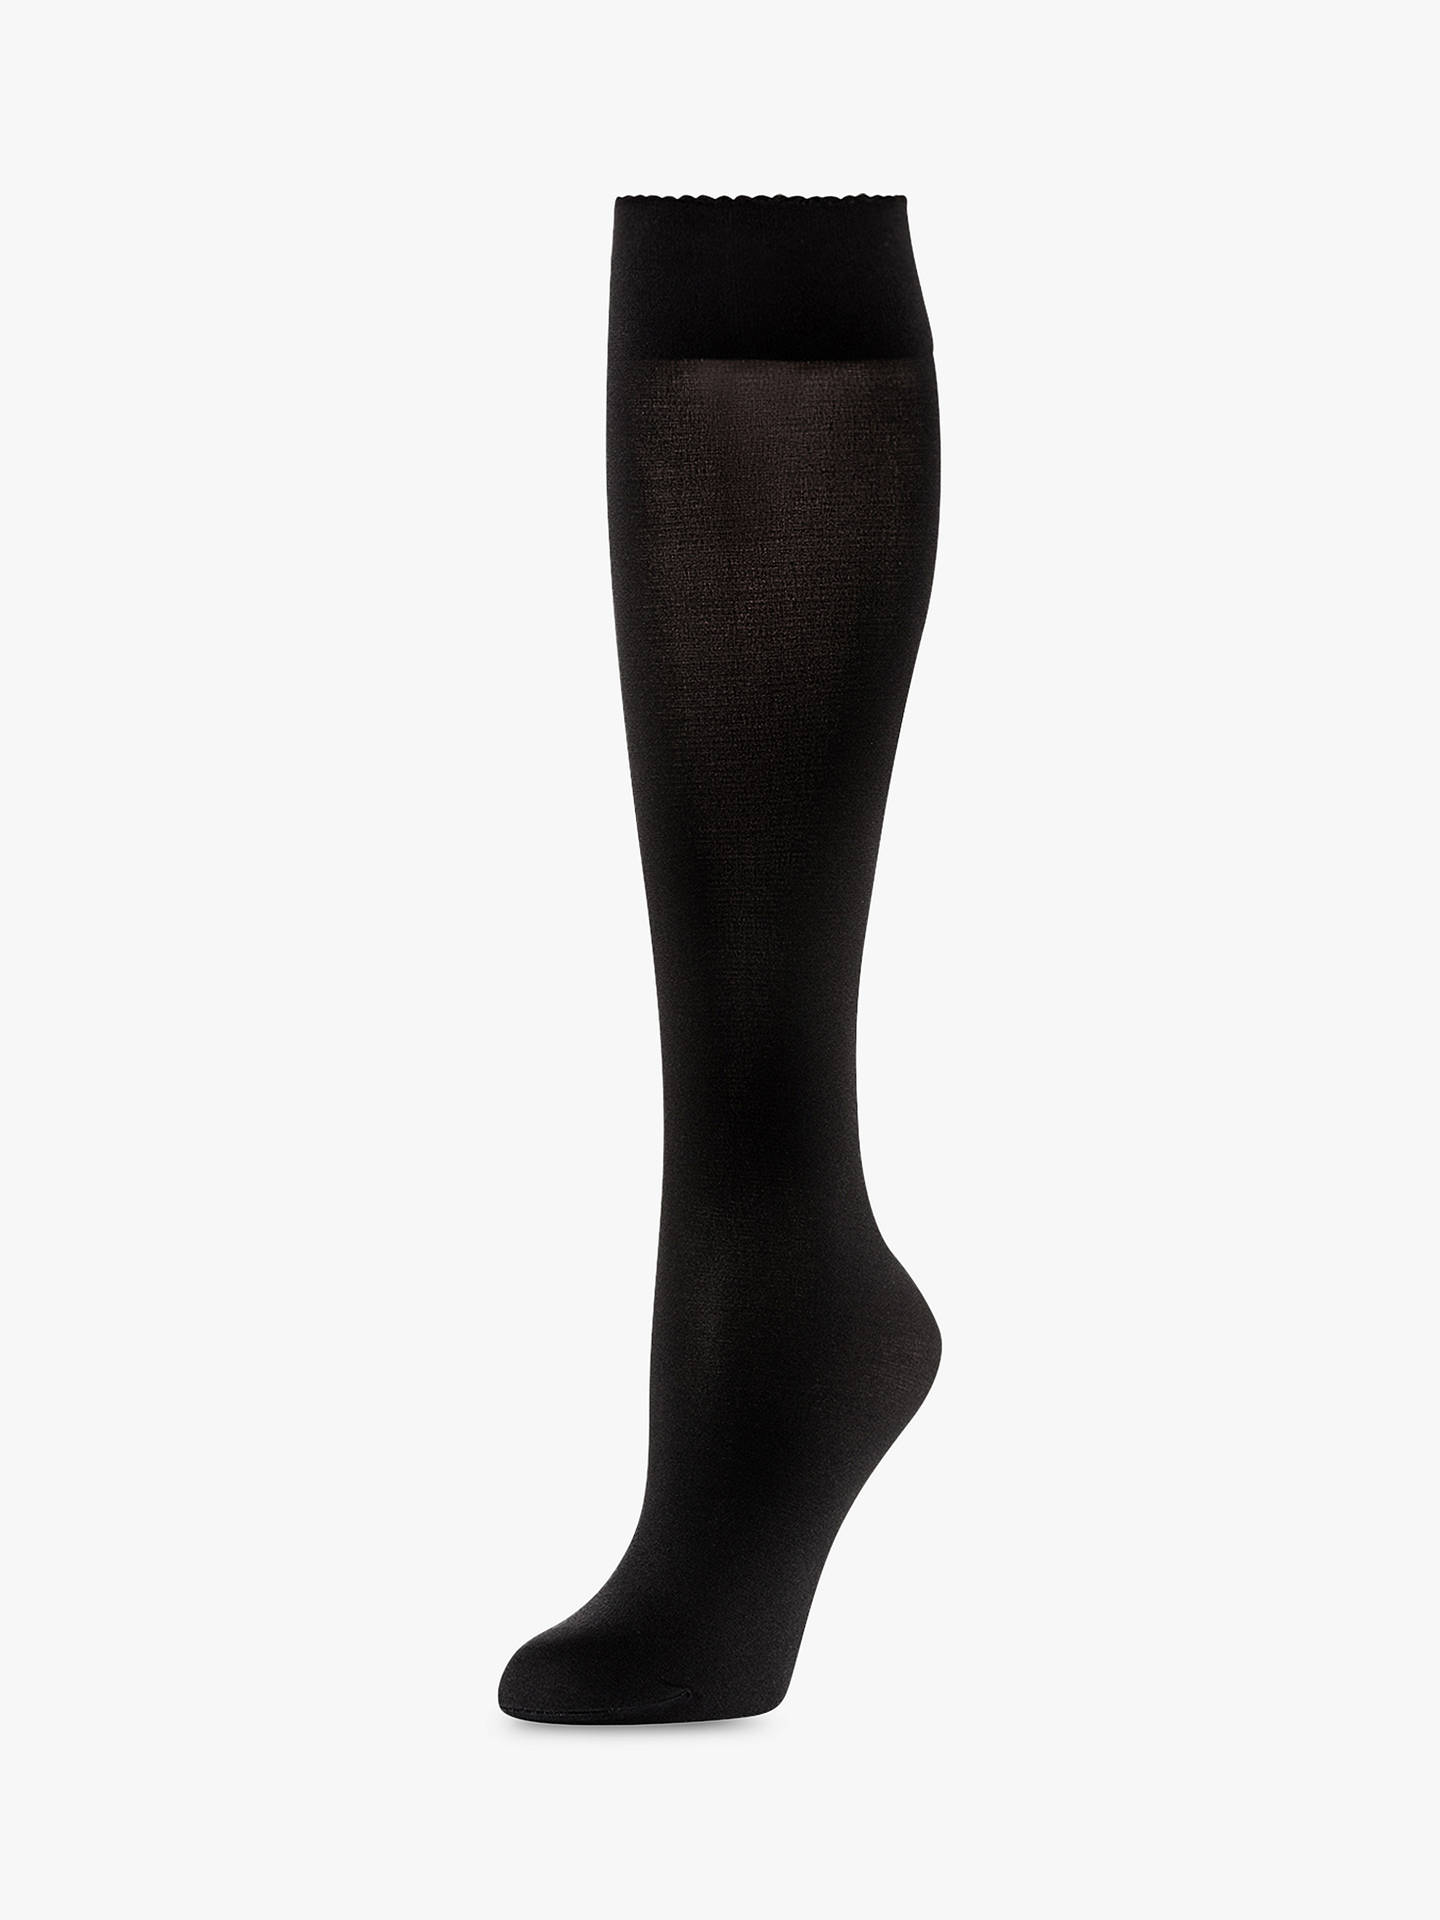 966515dd258 Buy Wolford Velvet de Luxe 50 Knee Highs